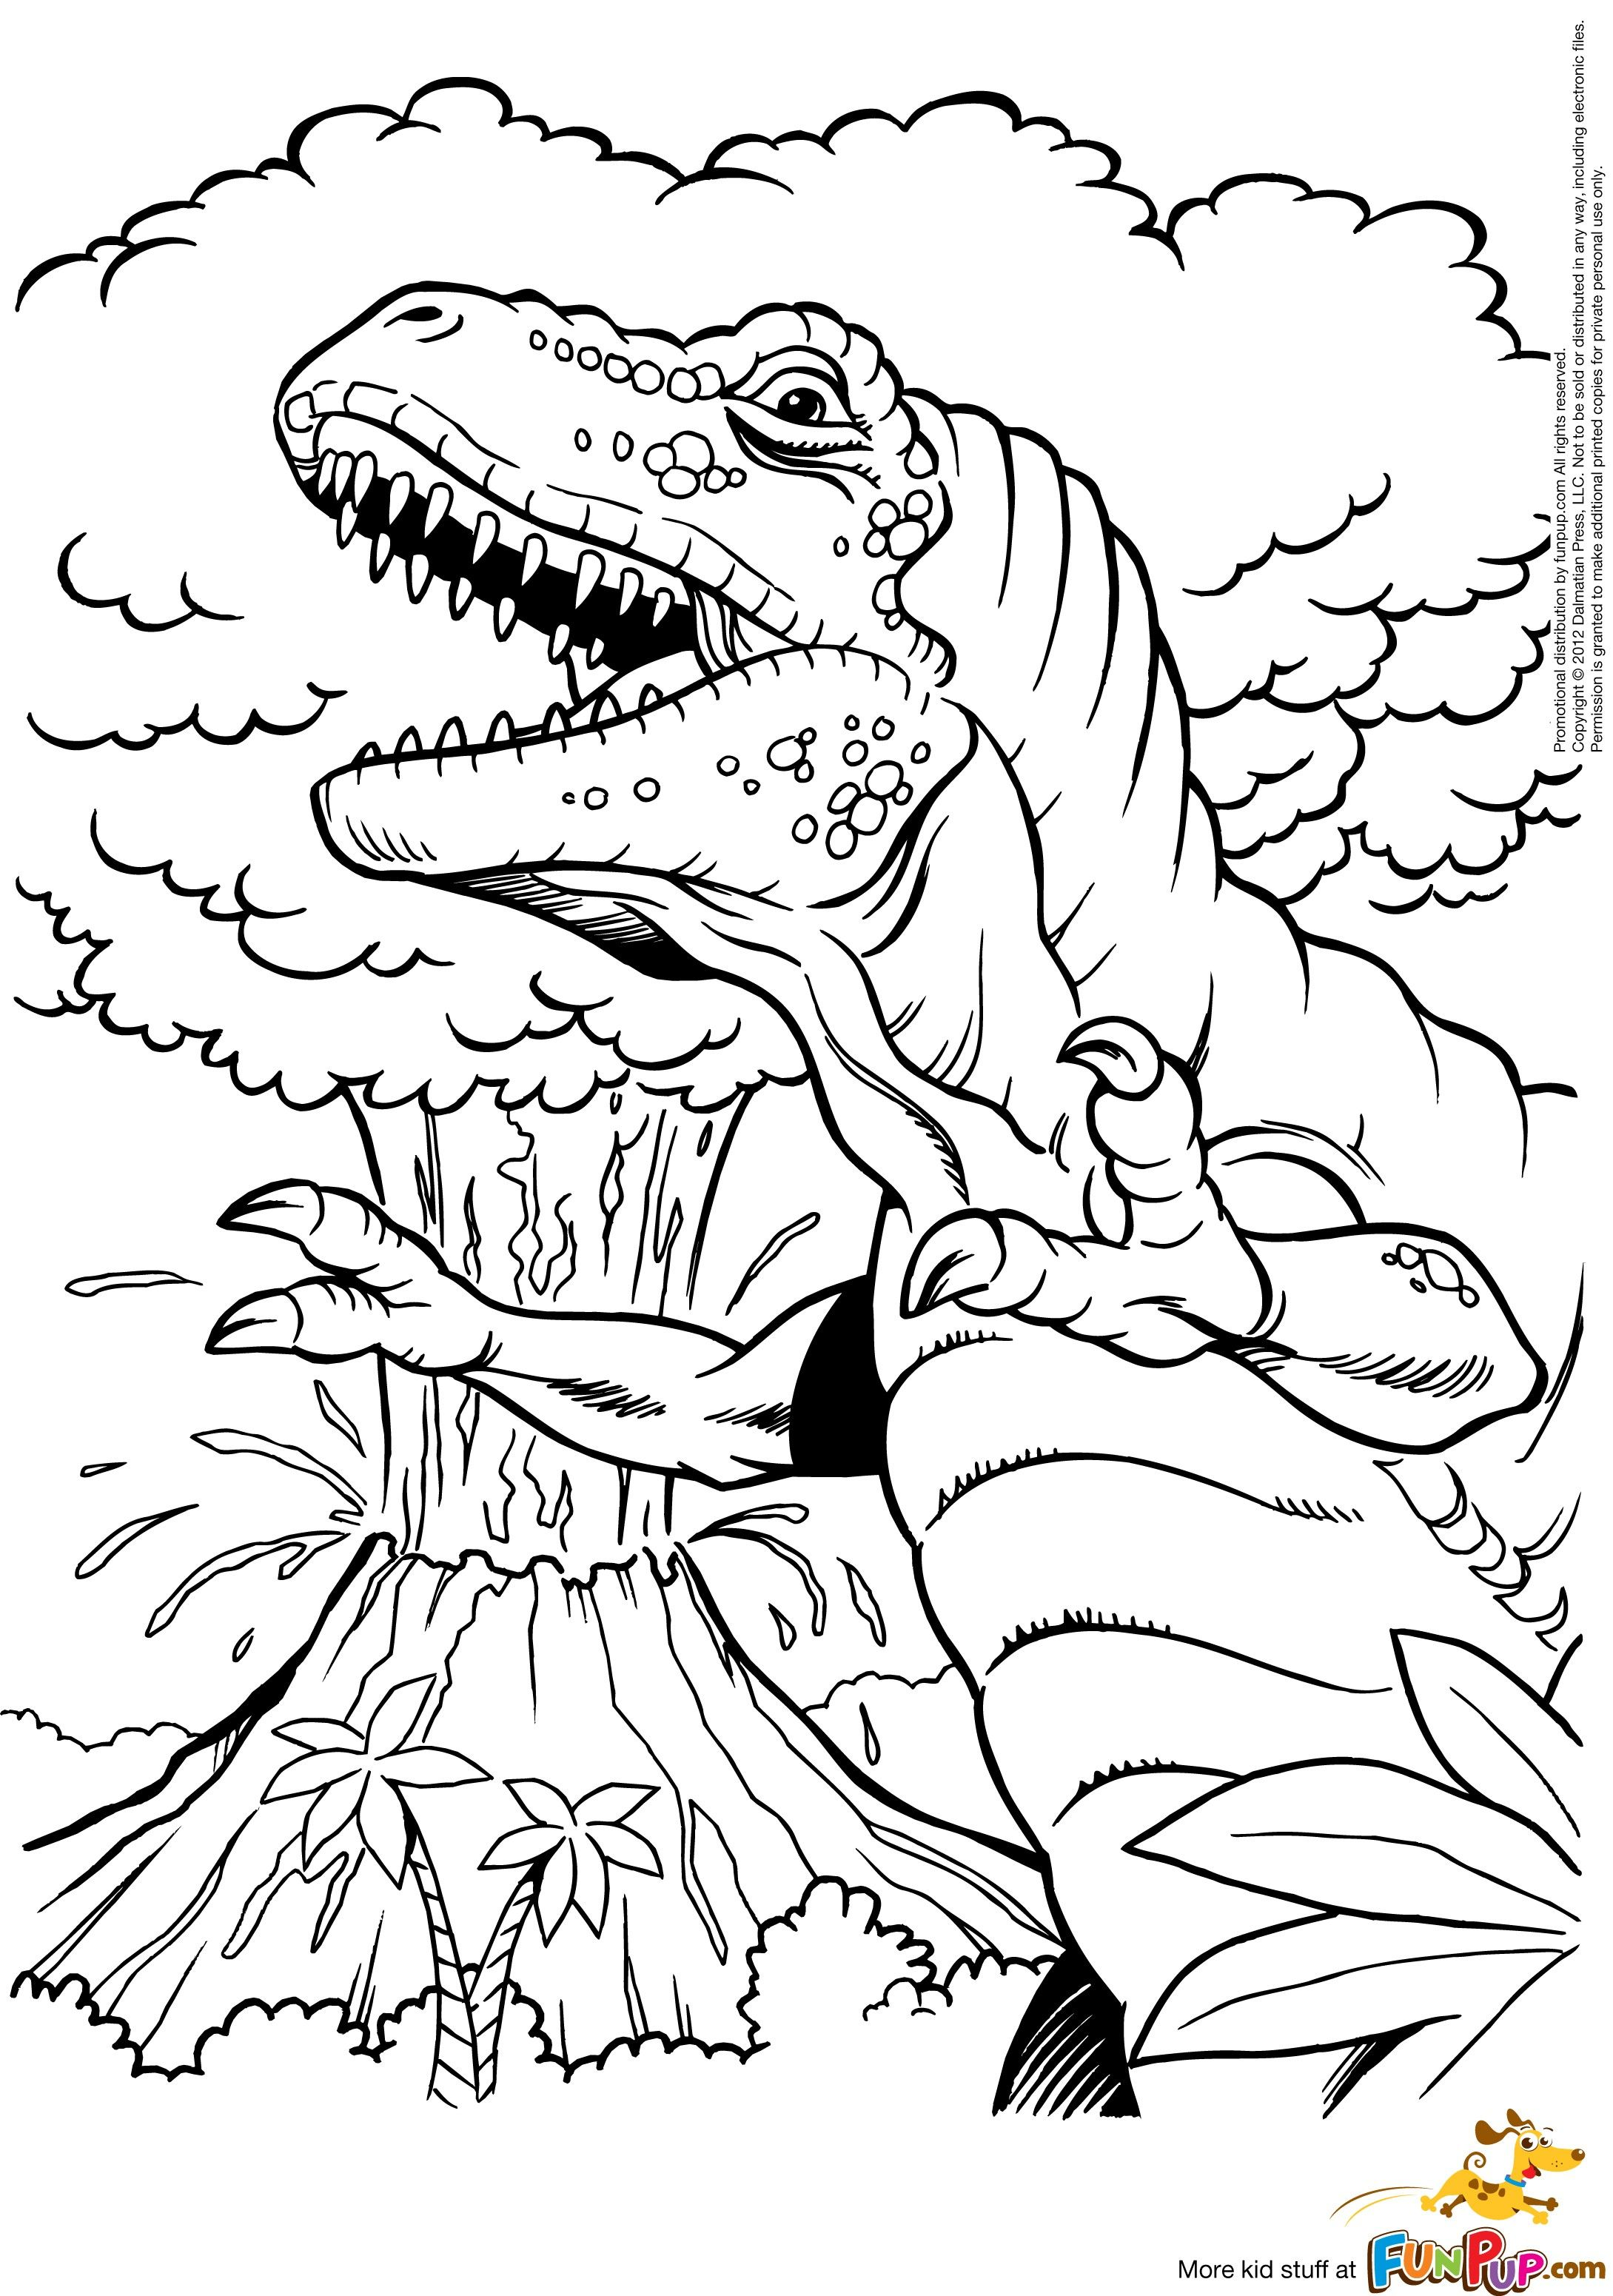 T-Rex and Volcano $0.00 | Odd & End Coloring & Printables ...